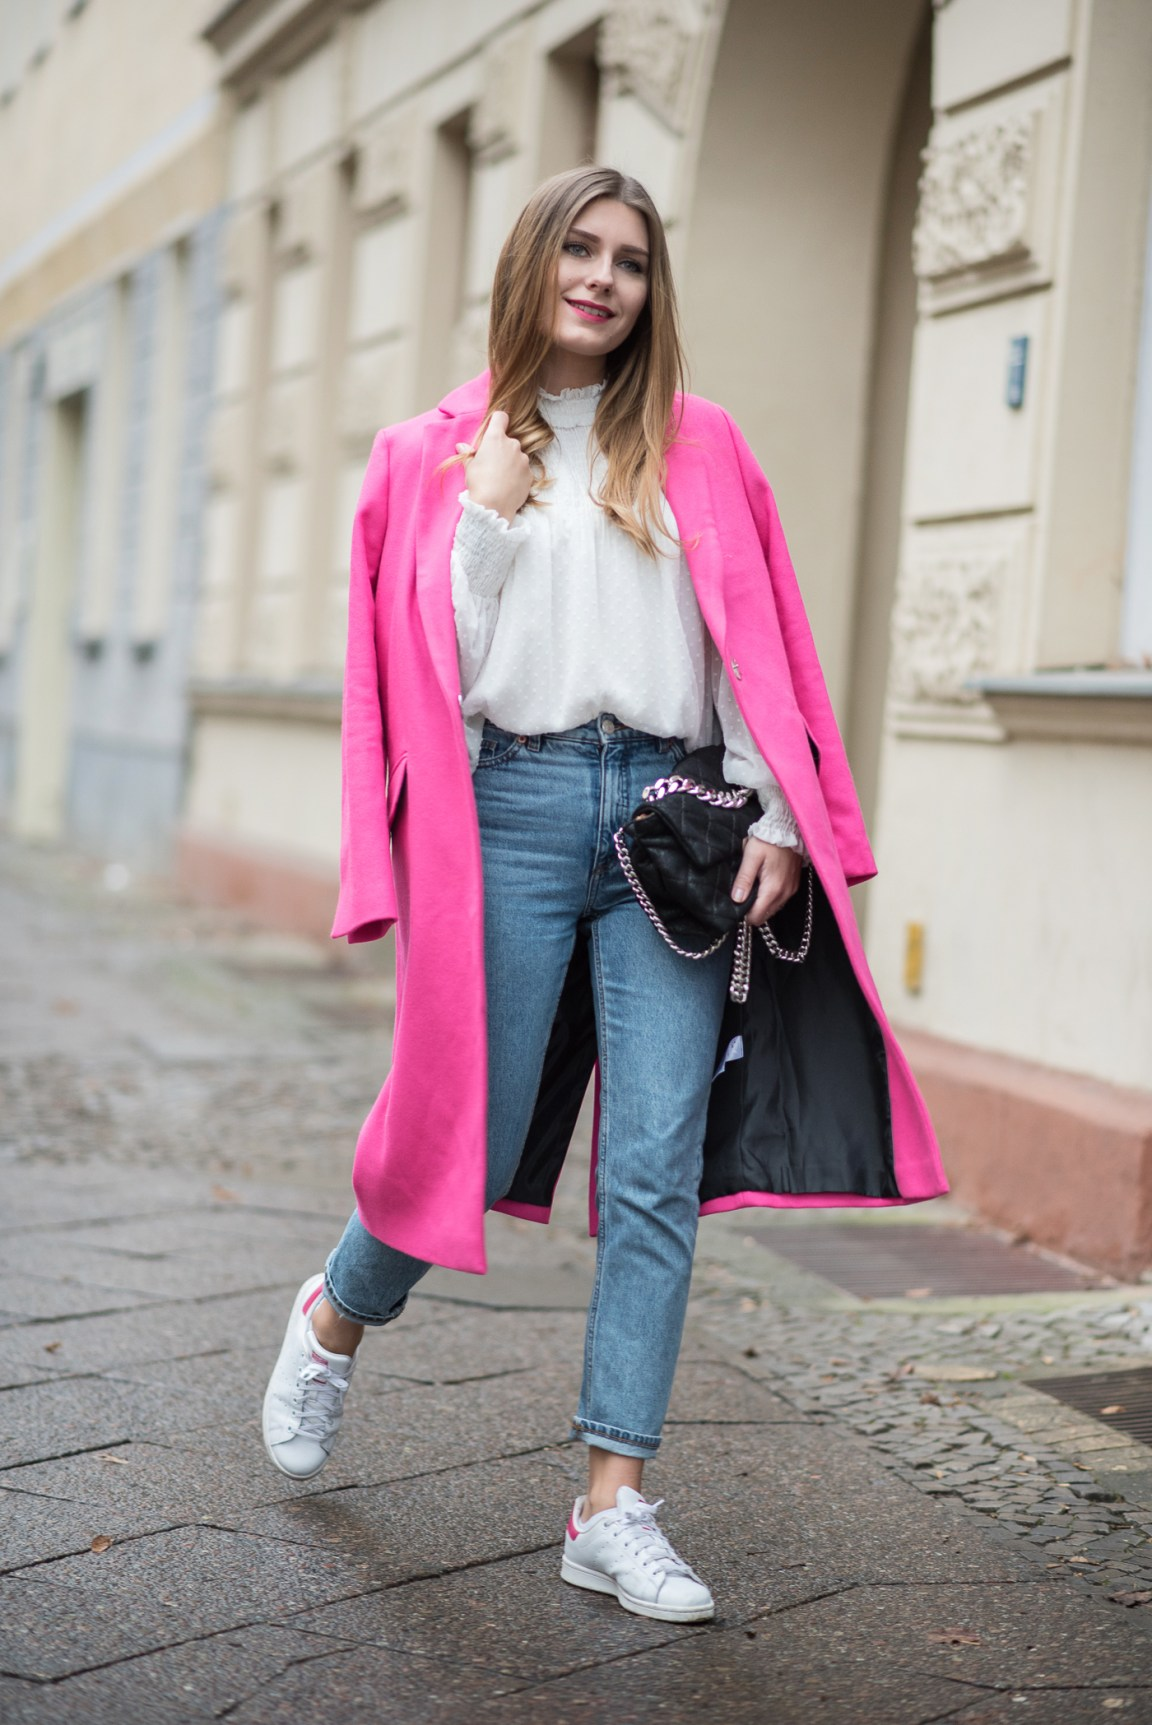 on_monday_wear_pink_topshop_coat_4